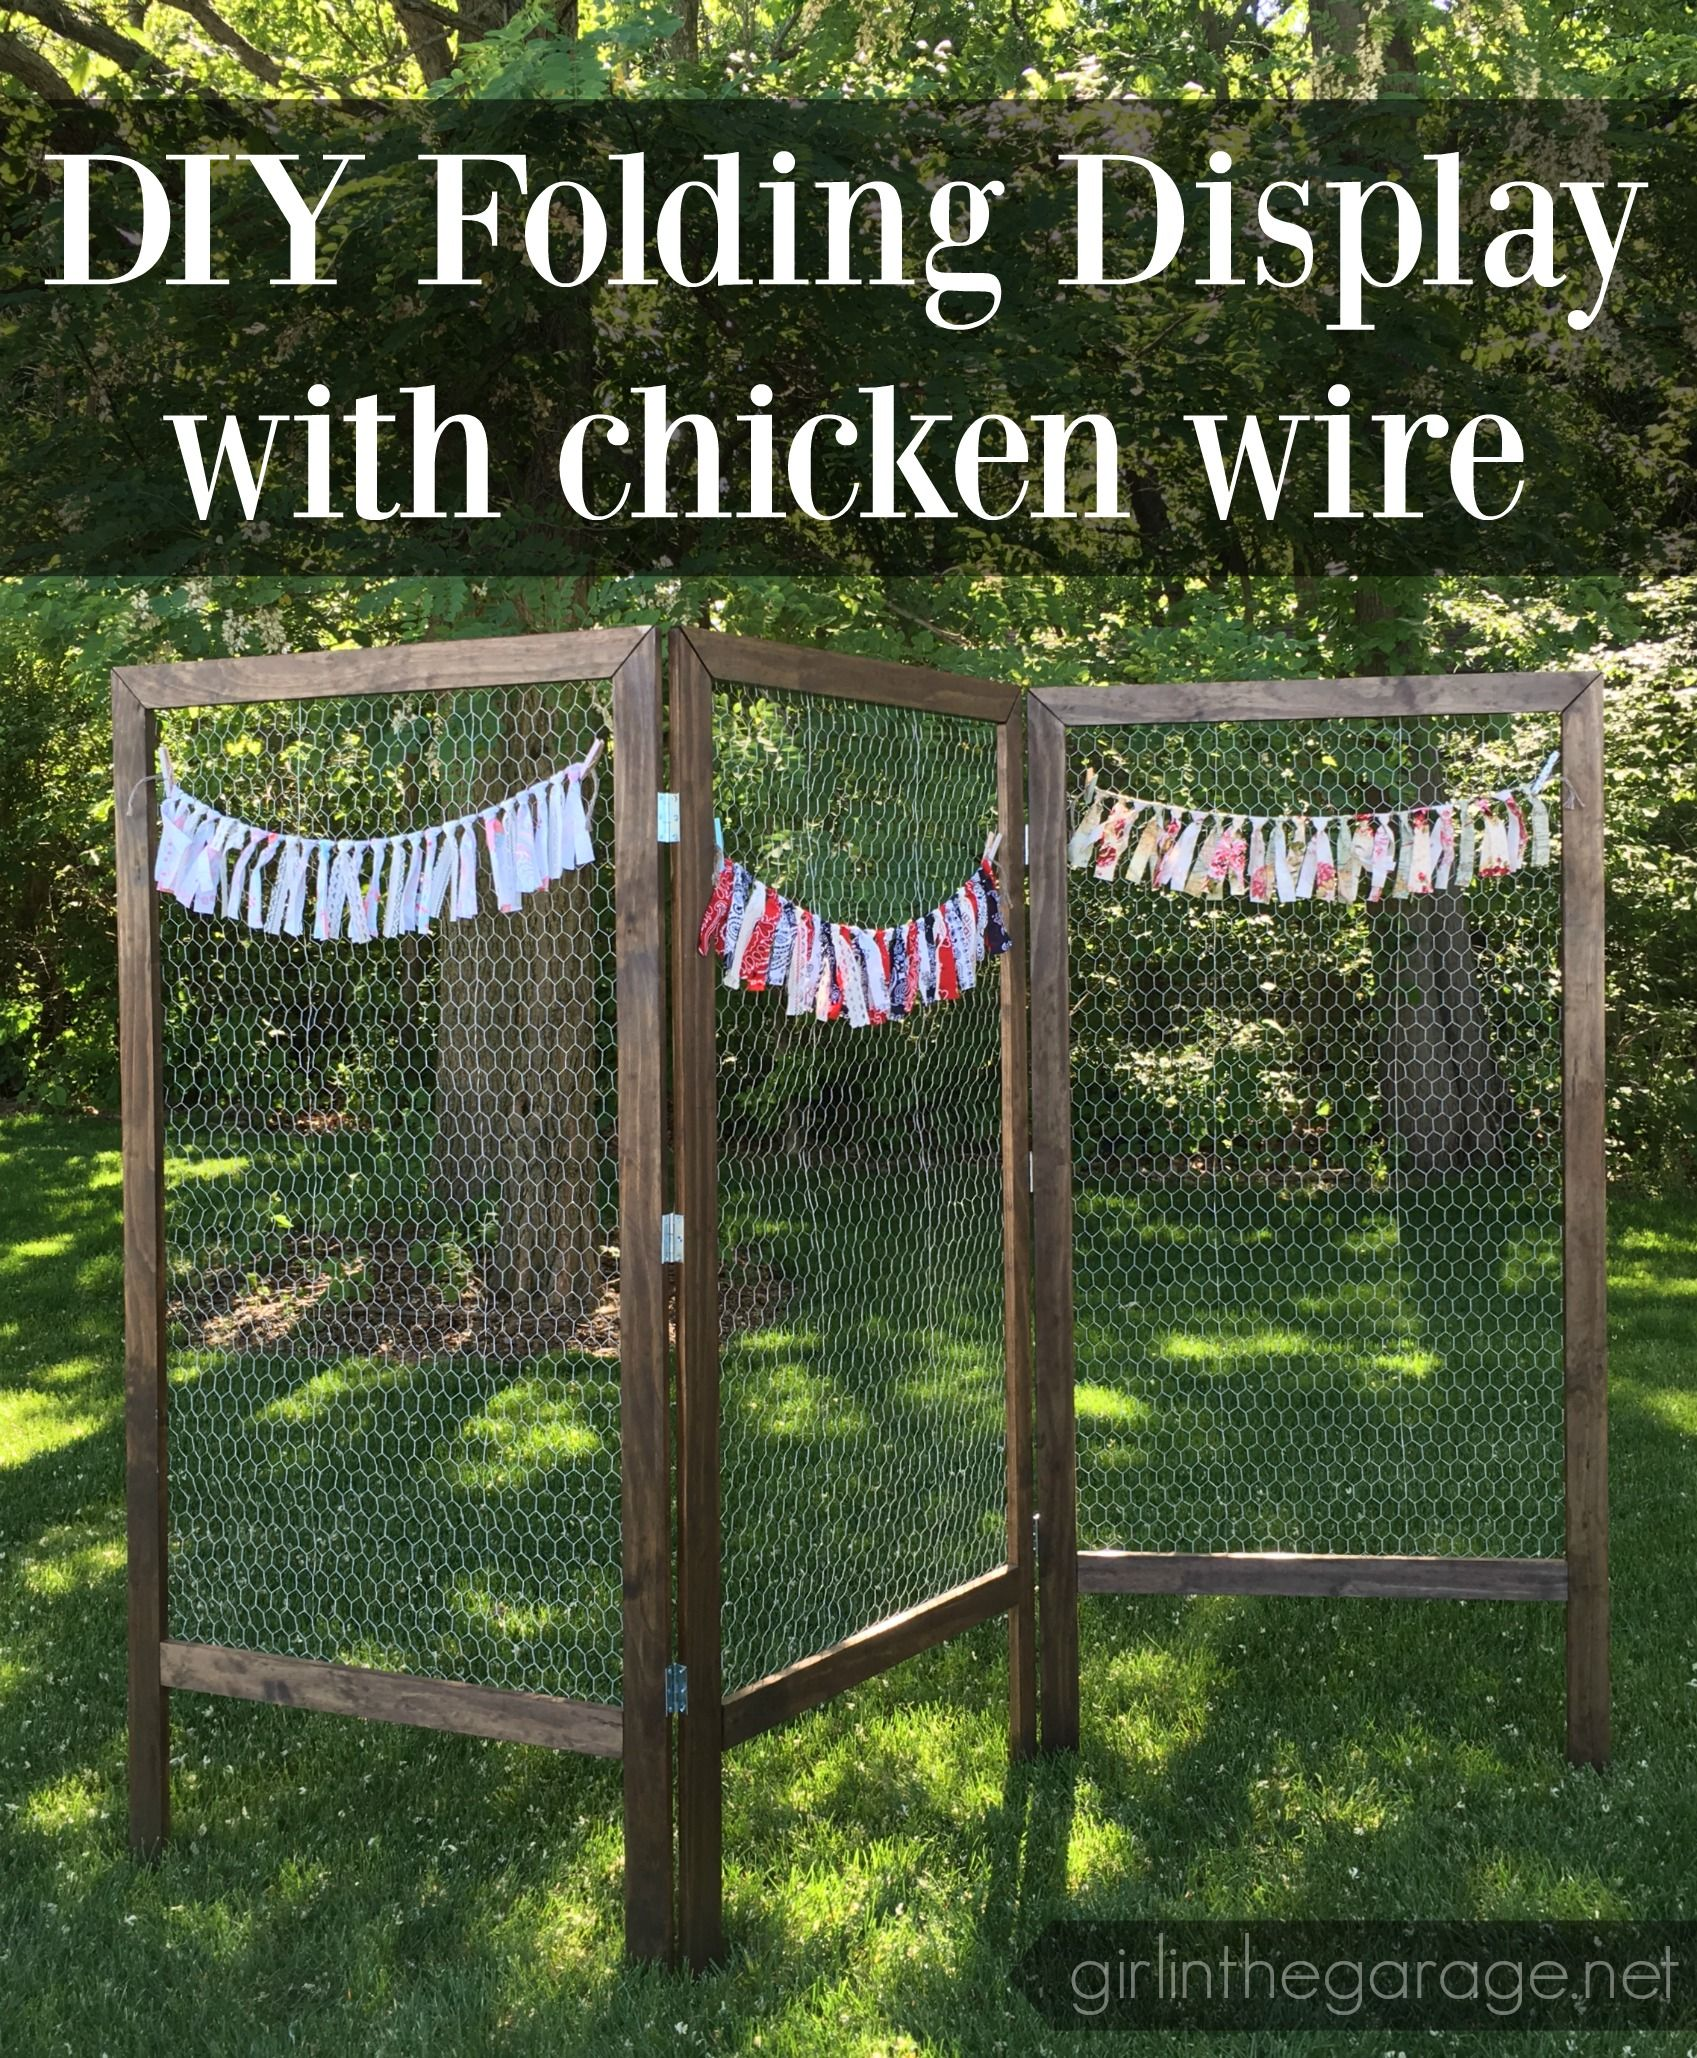 Info's : How to Build a DIY Folding Display with Chicken Wire - by Girl (and Guy) in the Garage